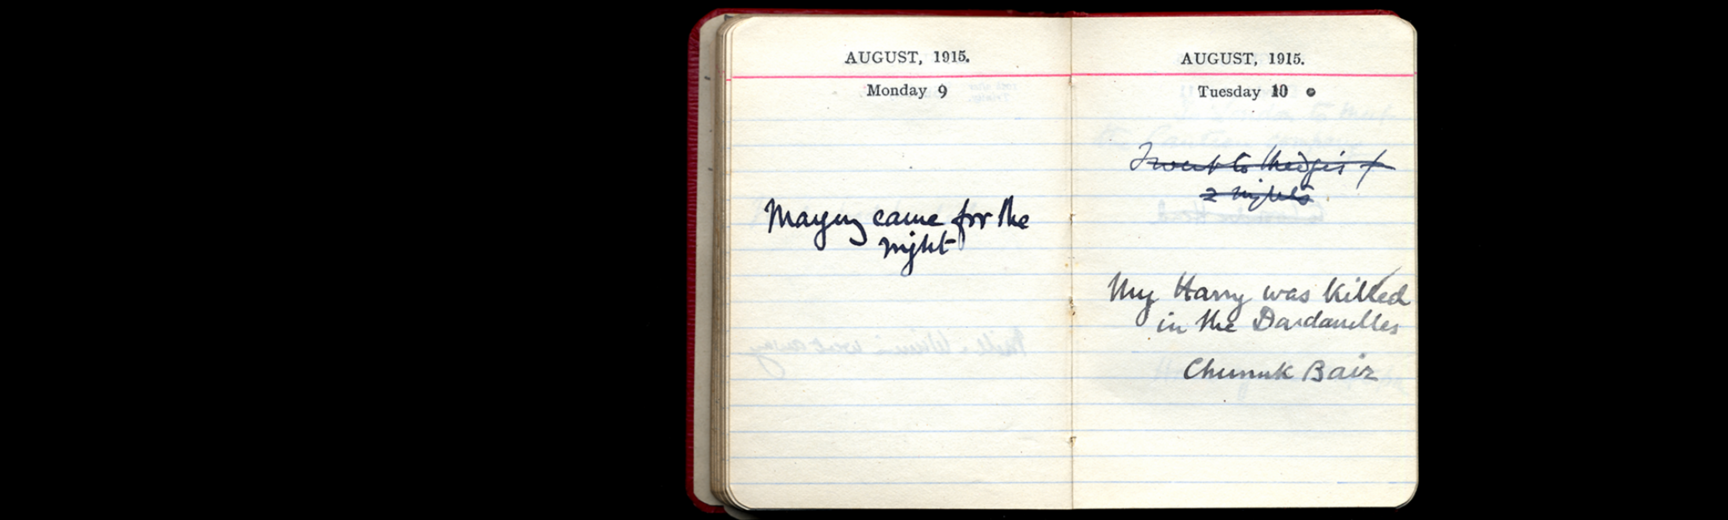 Amabel Moseley's Collins pocket diary